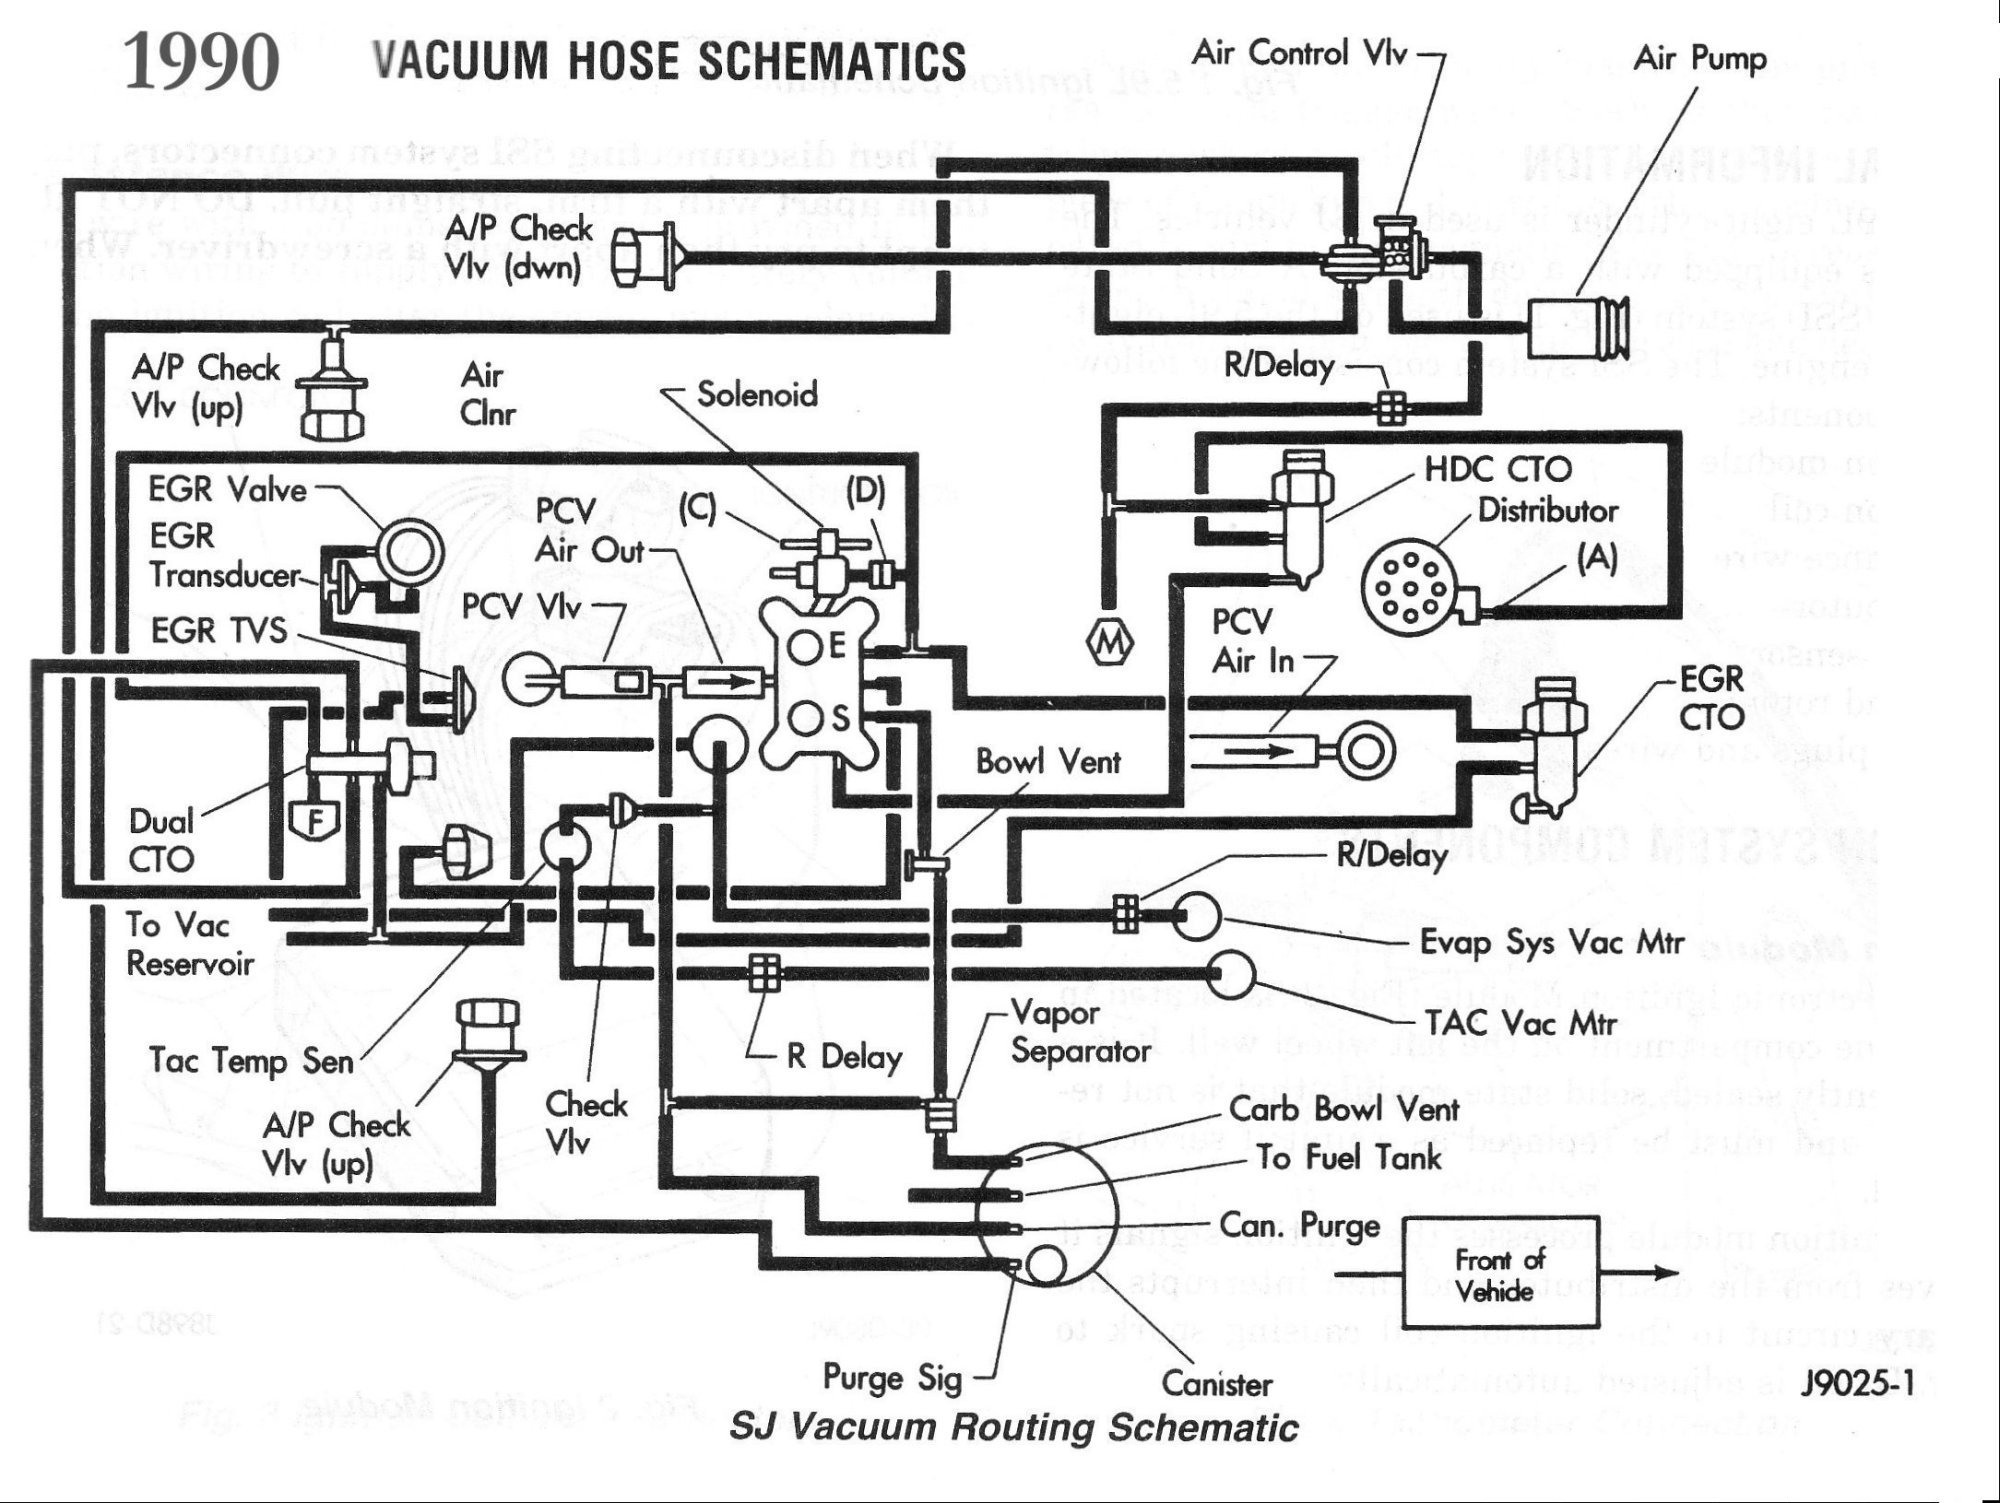 hight resolution of tom oljeep collins fsj vacuum layout page 1998 jeep grand cherokee vacuum diagram 1990